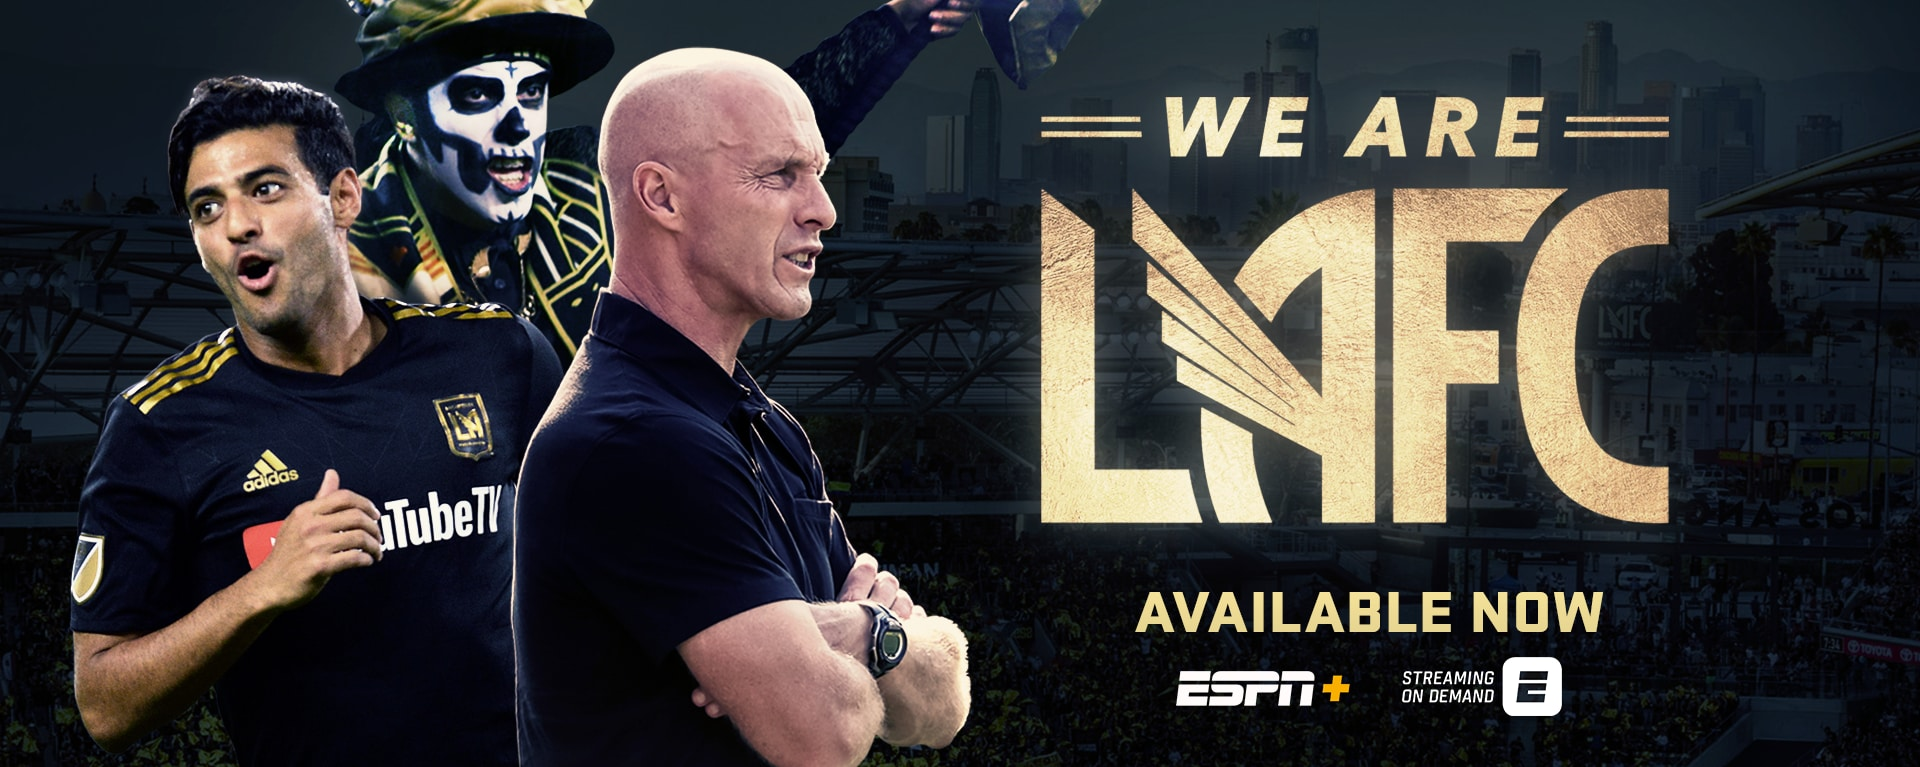 ESPN+ and MLS Present Sports Reality Series WE ARE LAFC